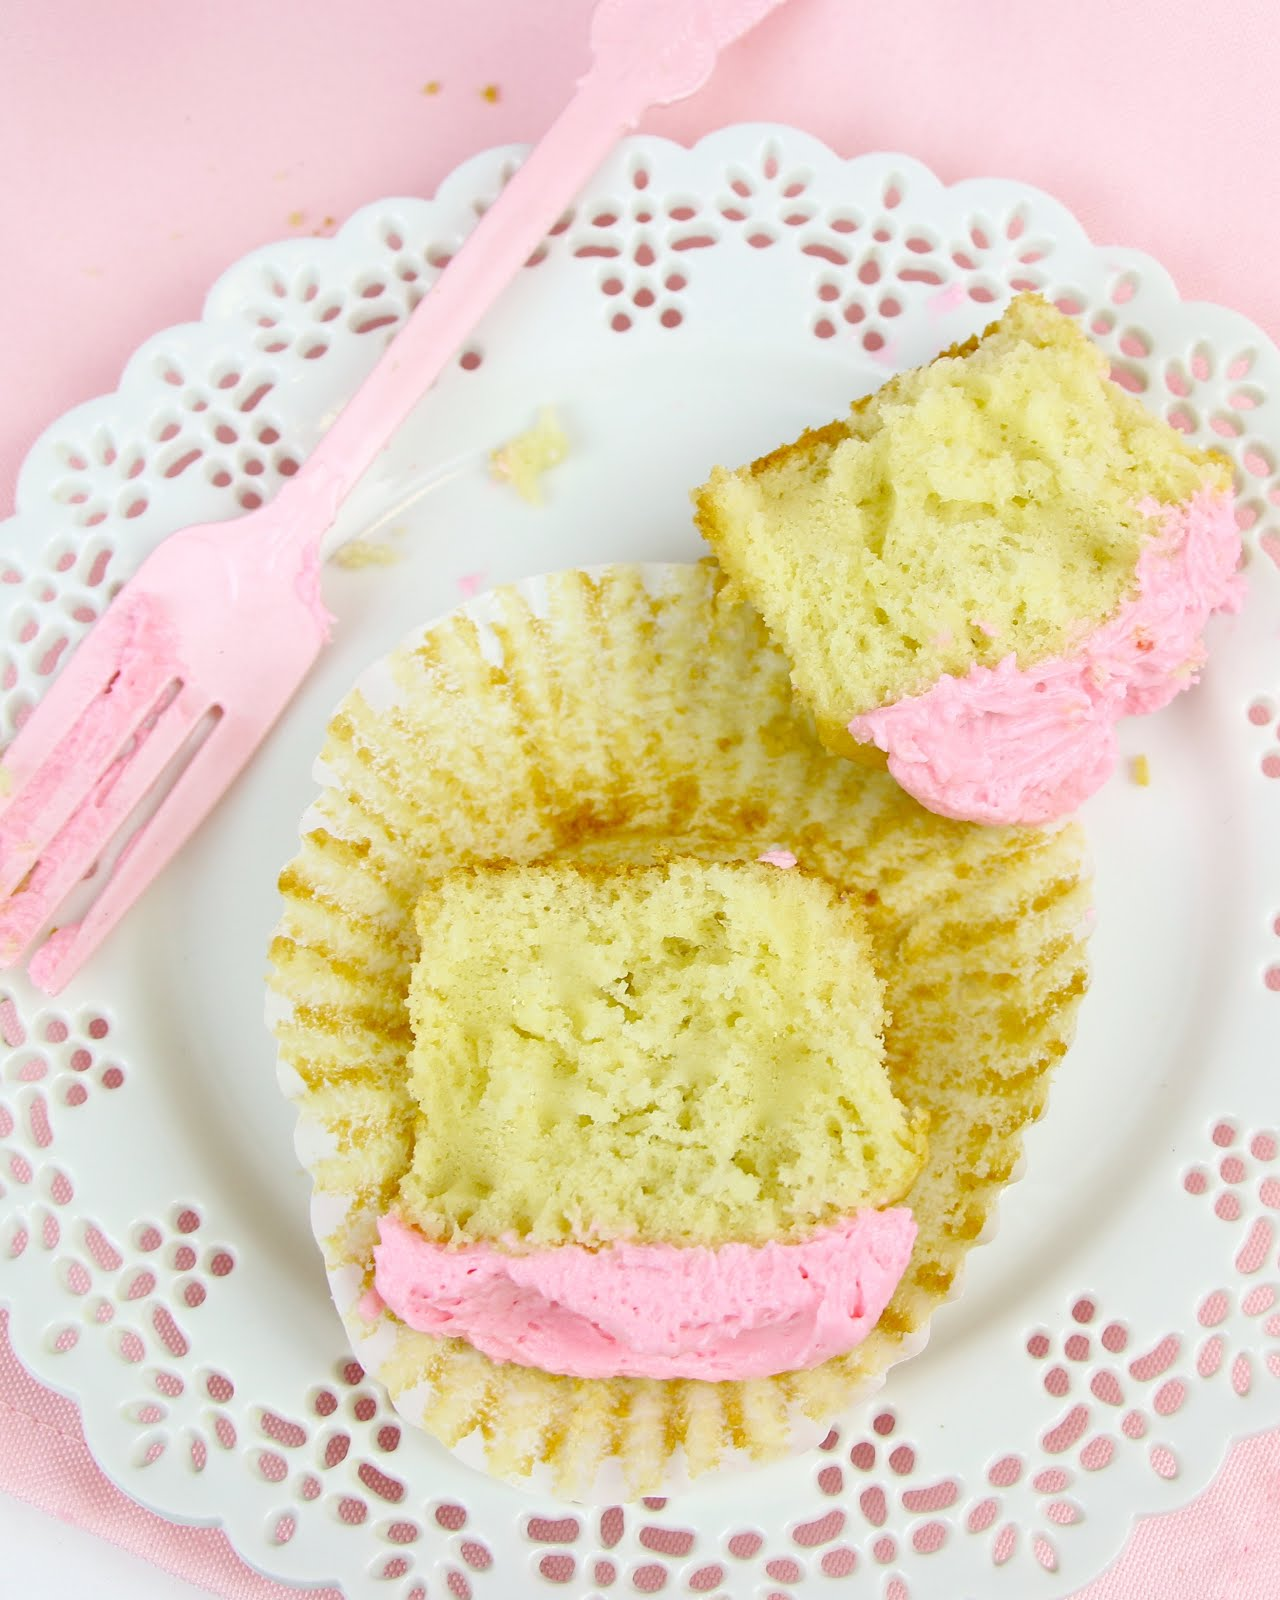 Award Winning Cake Recipes From Scratch: {VIDEO} THE BEST Vanilla Cupcakes From Scratch